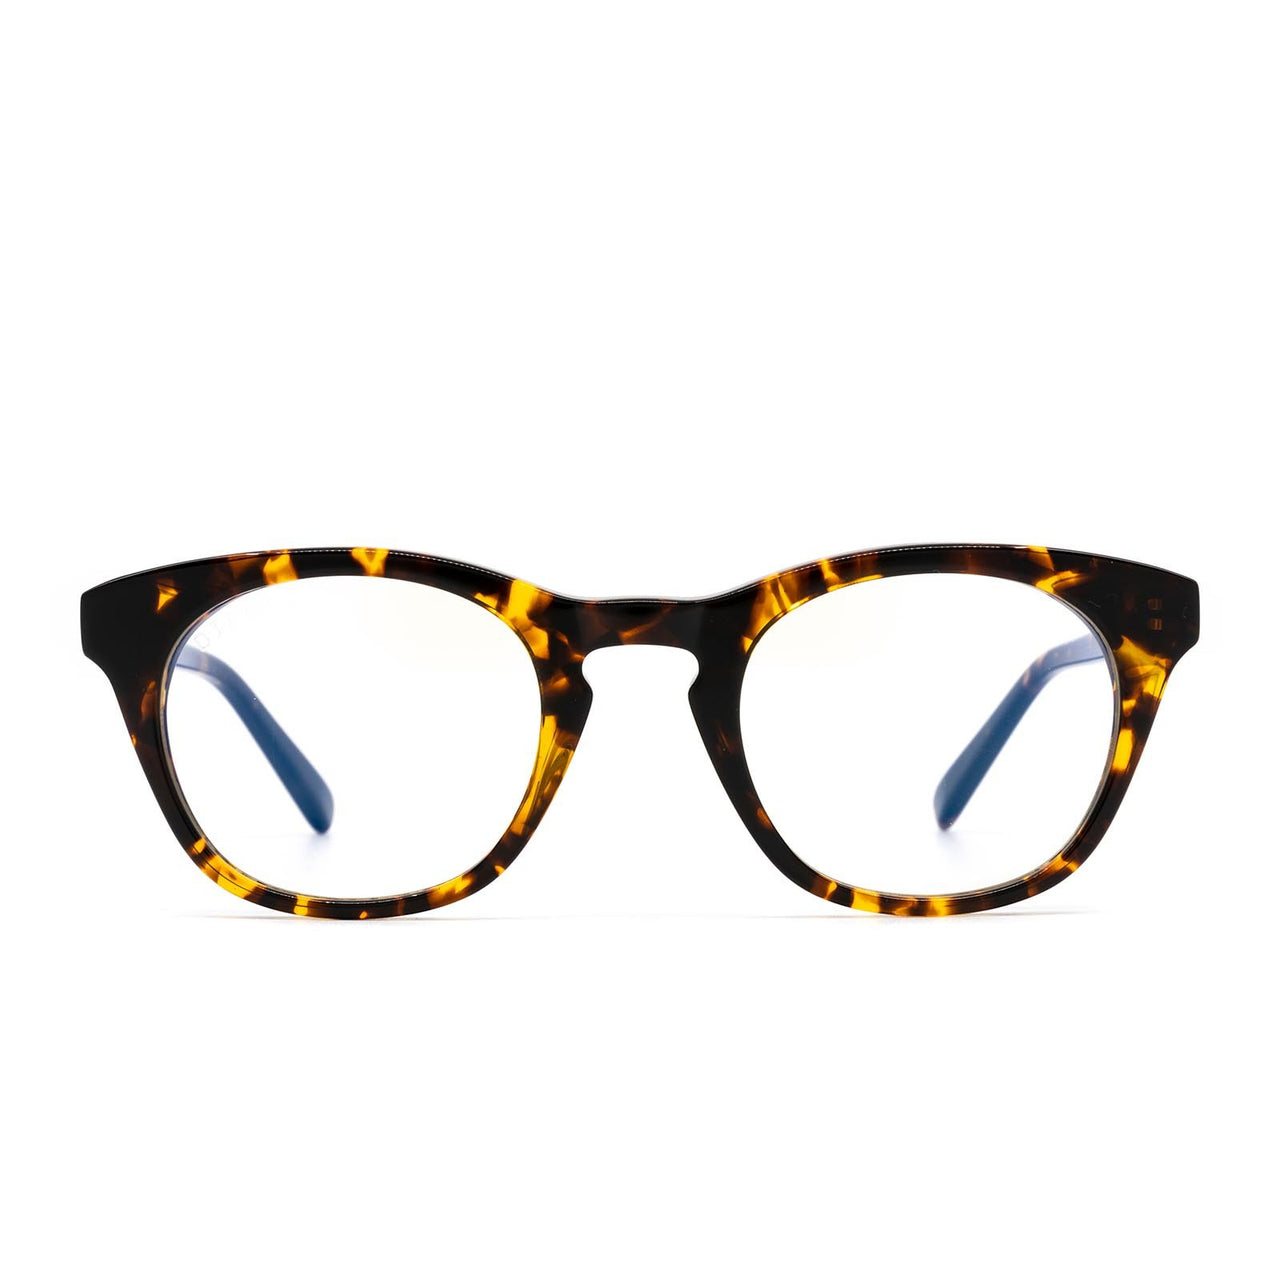 Callie prescription glasses with dark tortoise frames front view